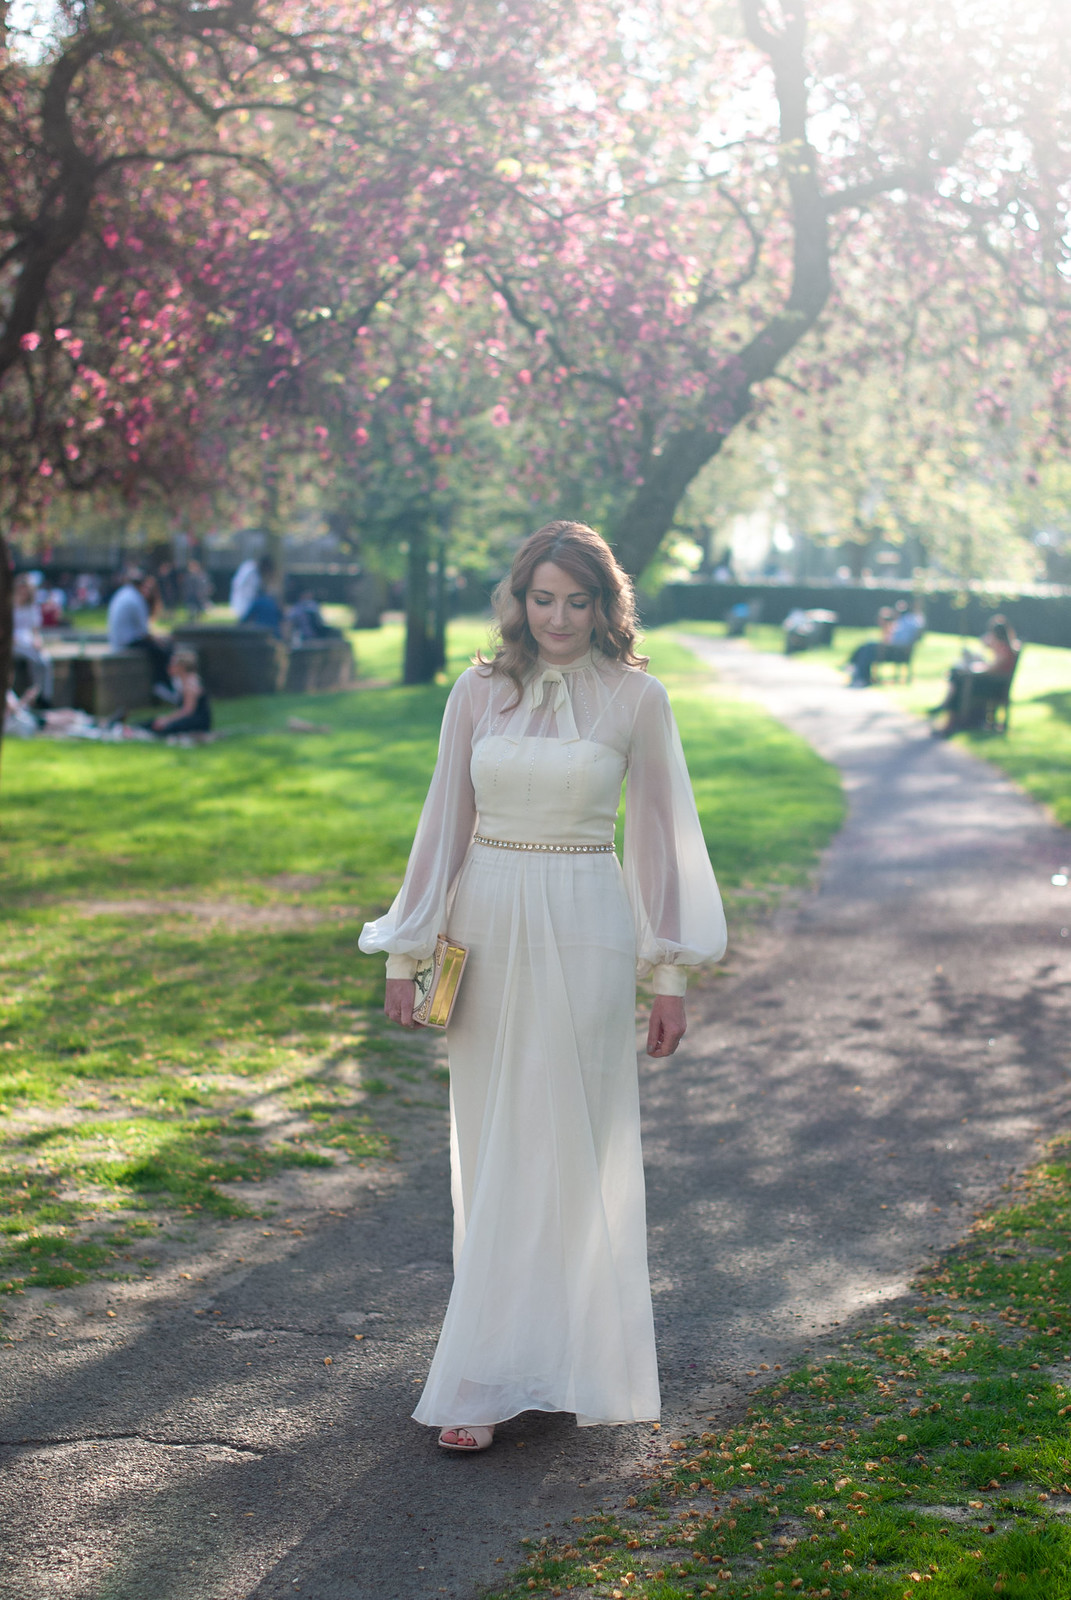 An Ethereal Vintage Evening Dress for the UK Blog Awards: Ivory 70s chiffon dress with balloon sleeves, rhinestones on the bodice and a high neck with pussy bow | Not Dressed As Lamb, over 40 style blog